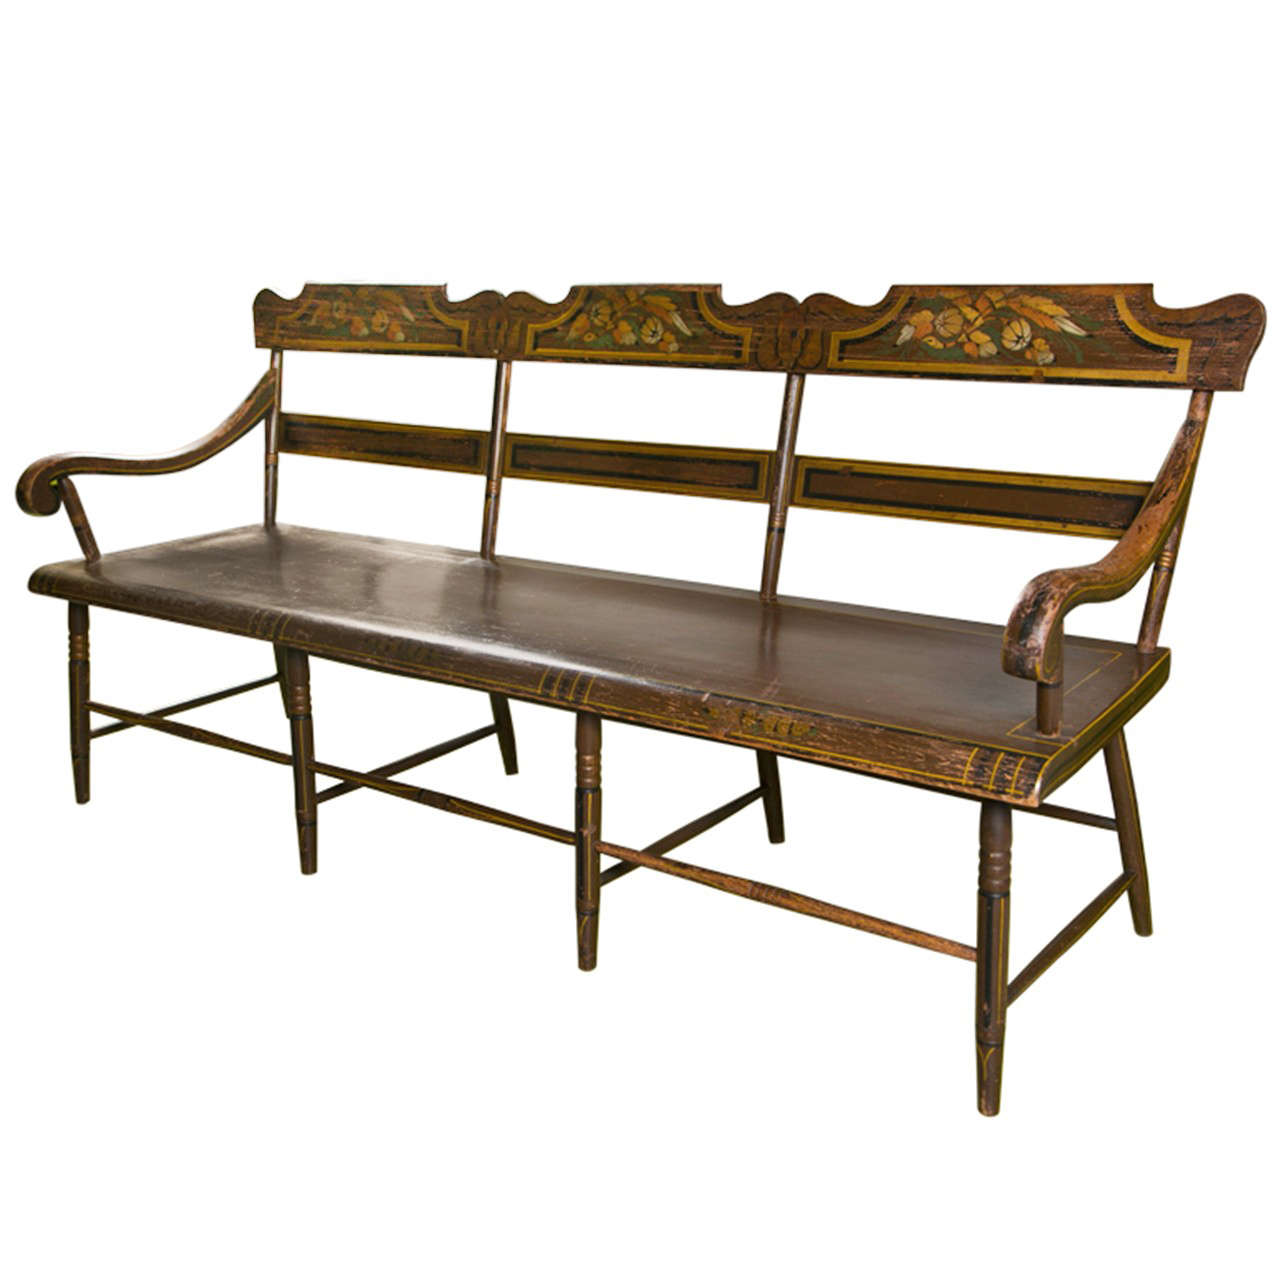 One seat bench pennsylvania single plank seat bench at 1stdibs for M furniture gallery new orleans